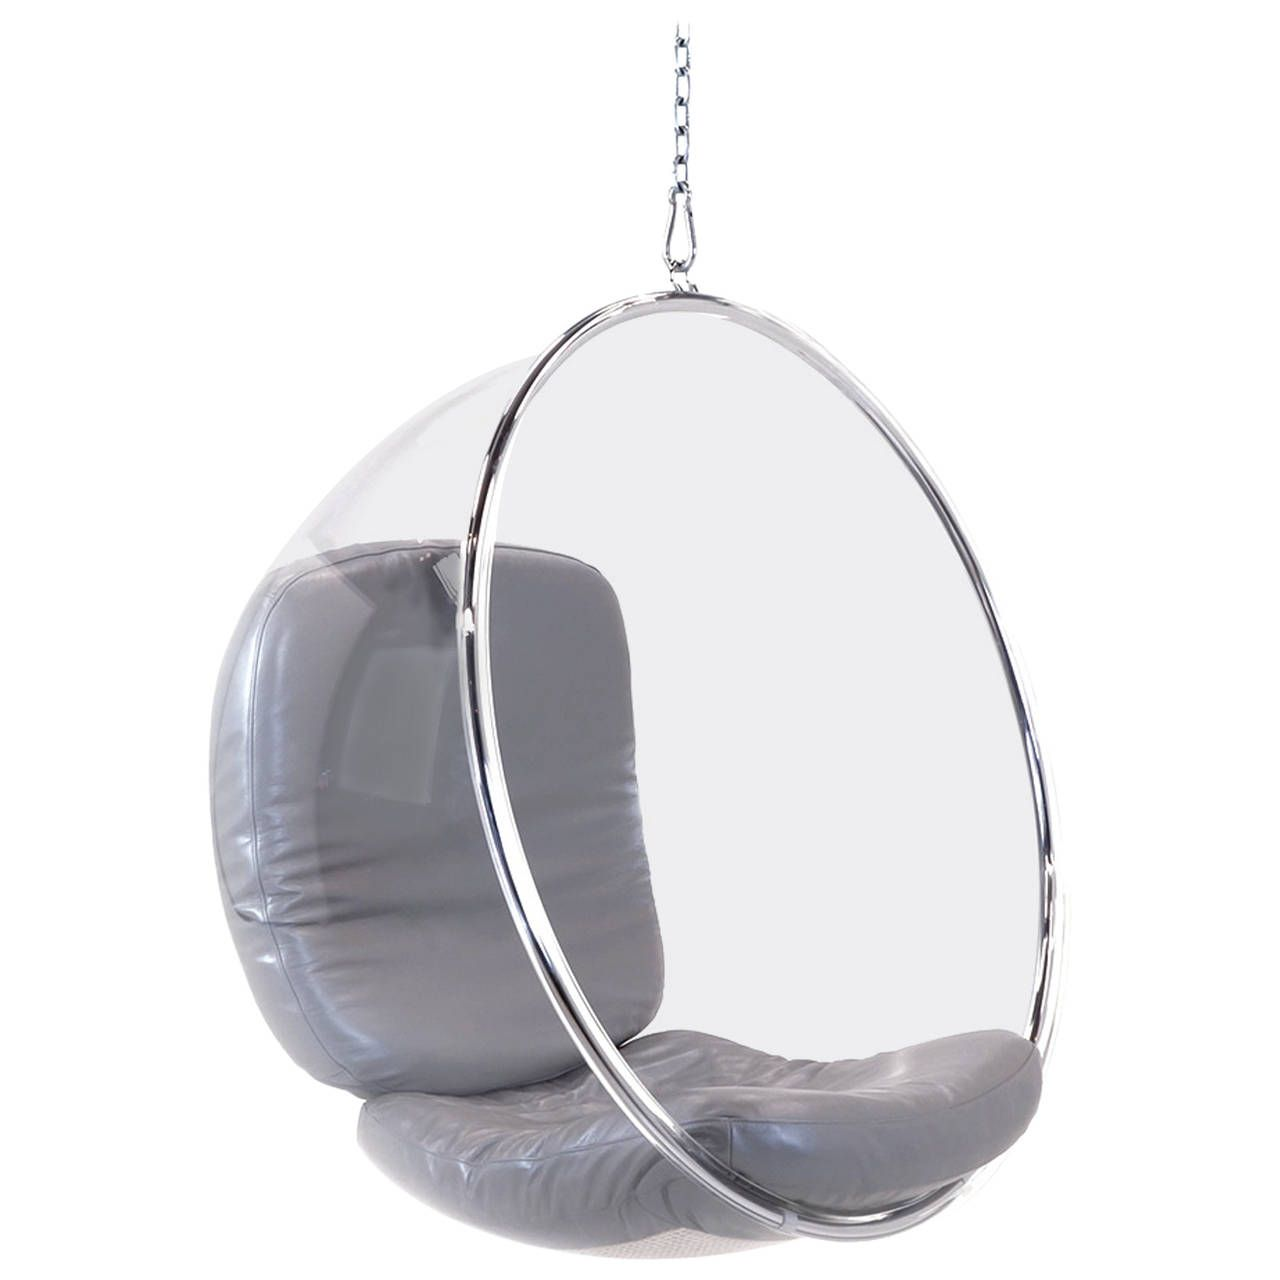 Original Eero Aarnio Bubble Chair, Adelta, Finland | From A Unique  Collection Of Antique